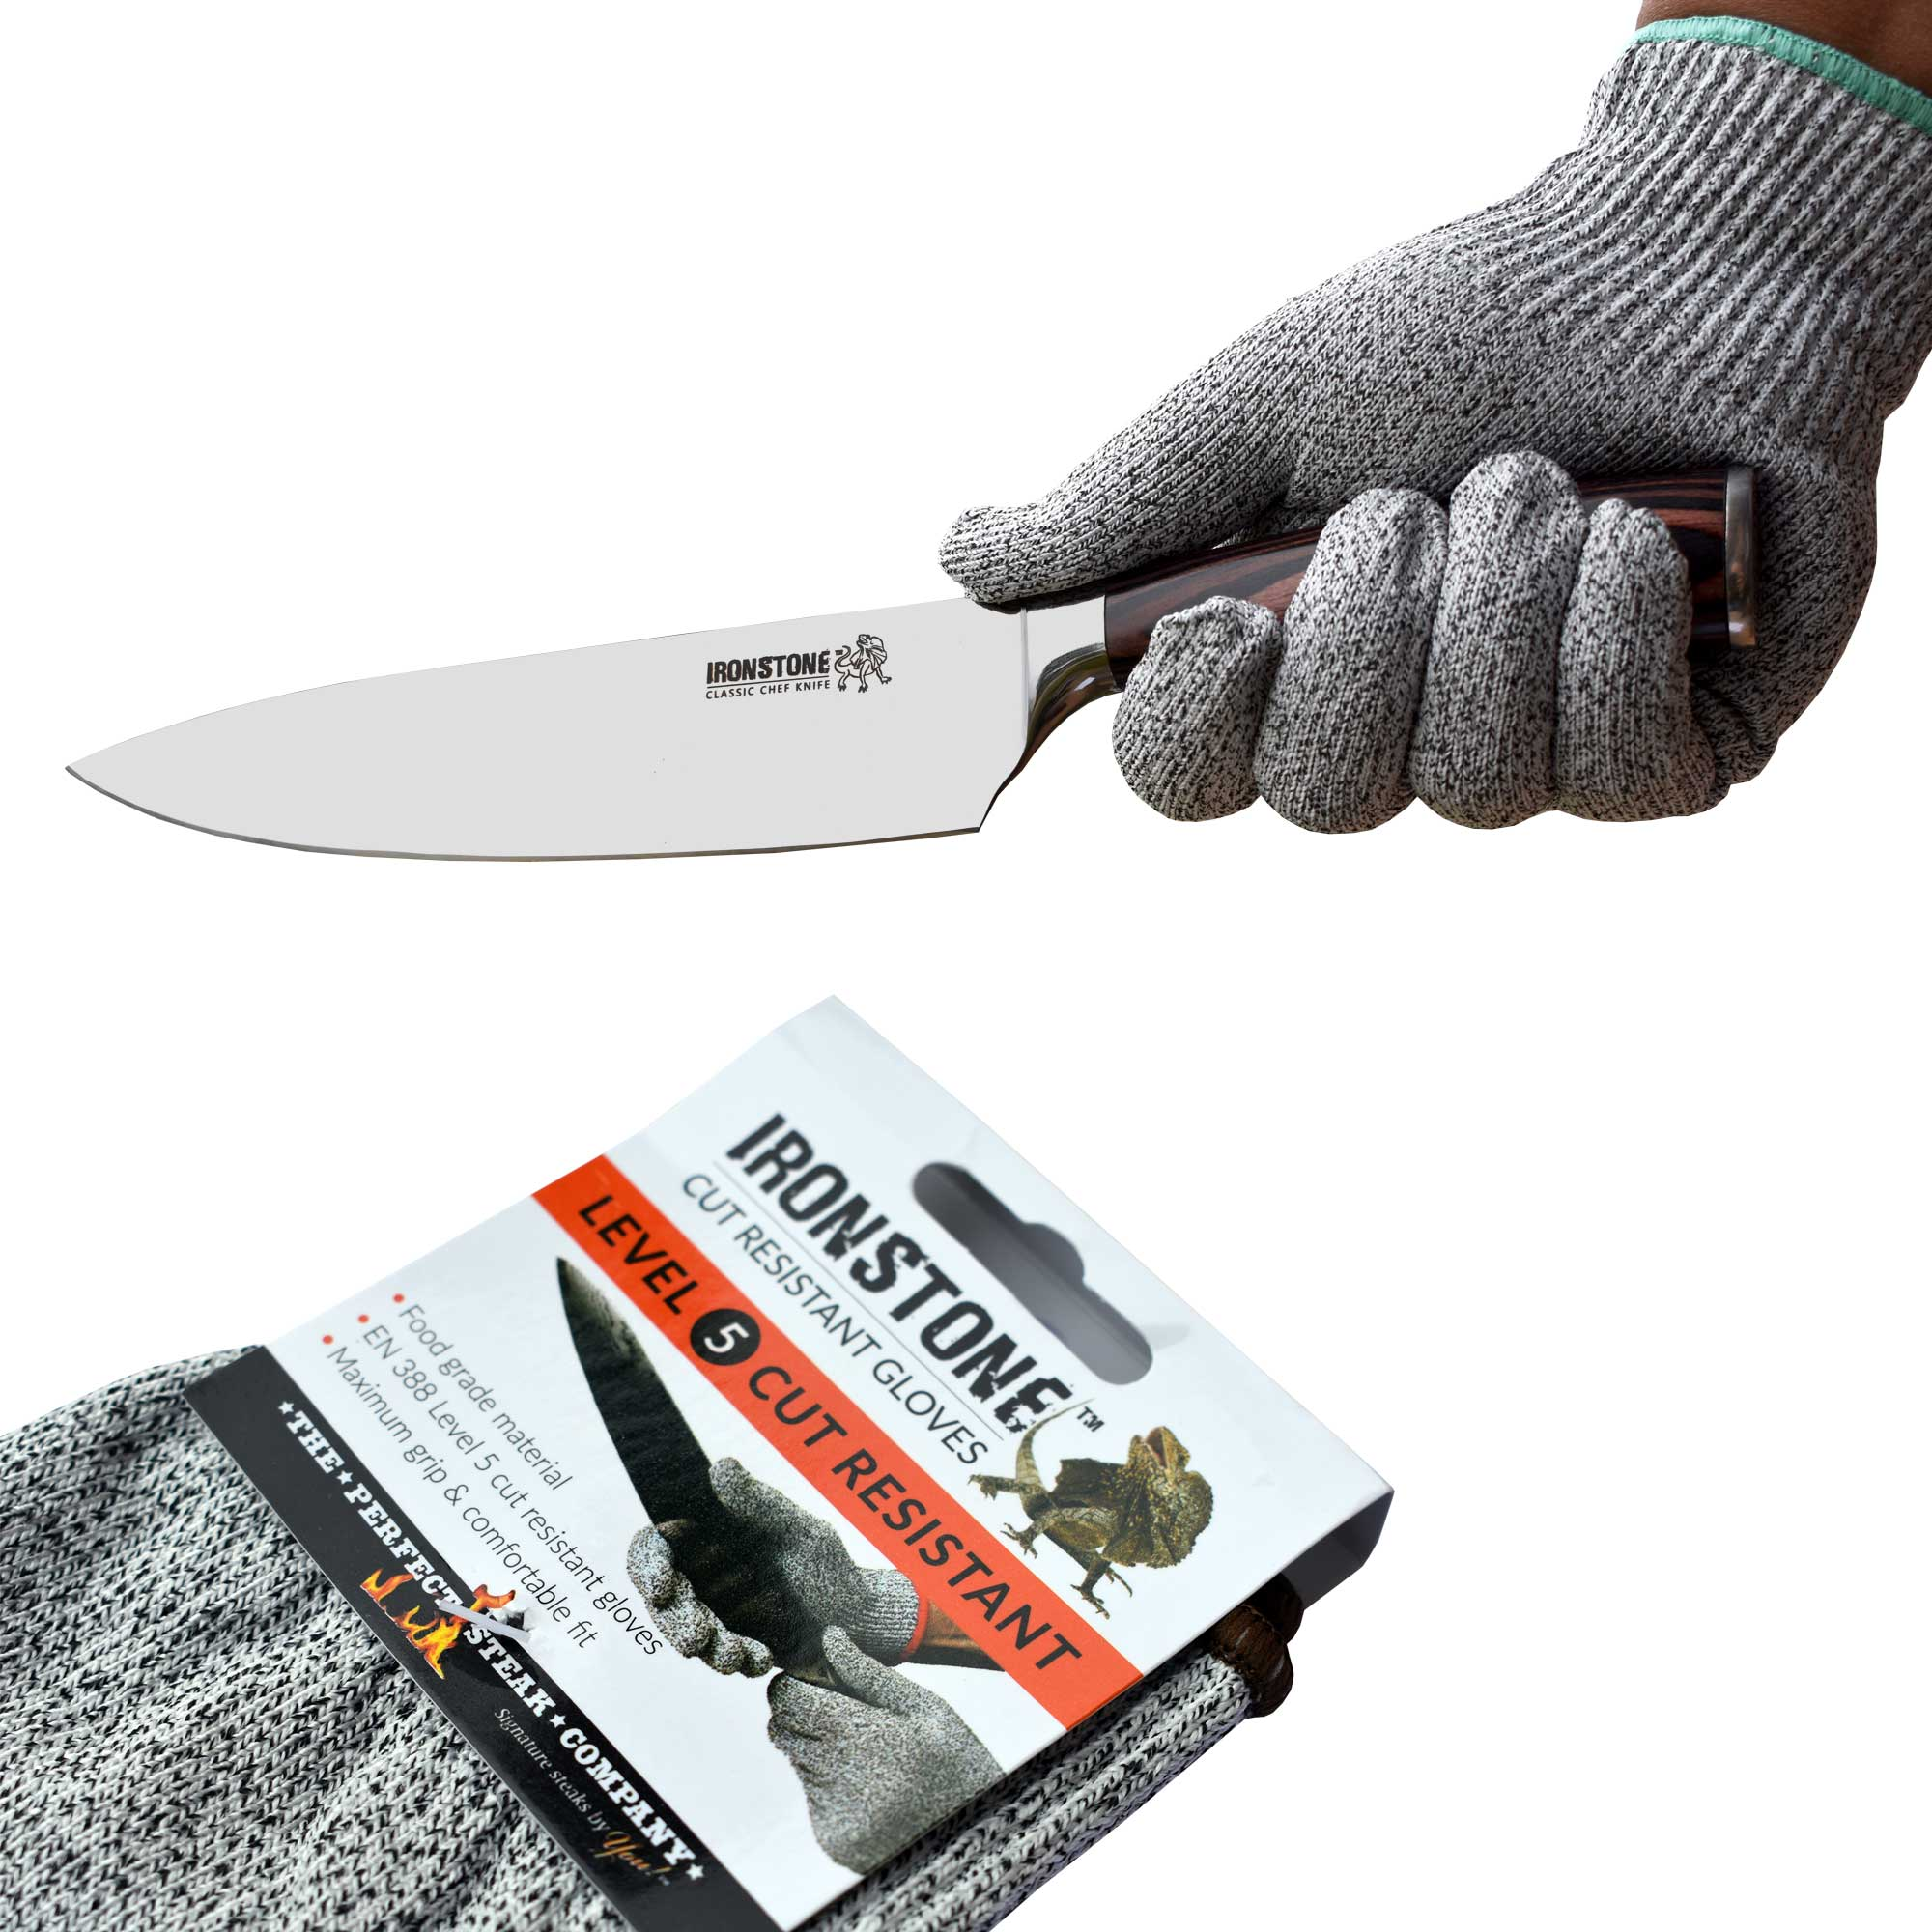 Ironstone-Knife-and-gloves